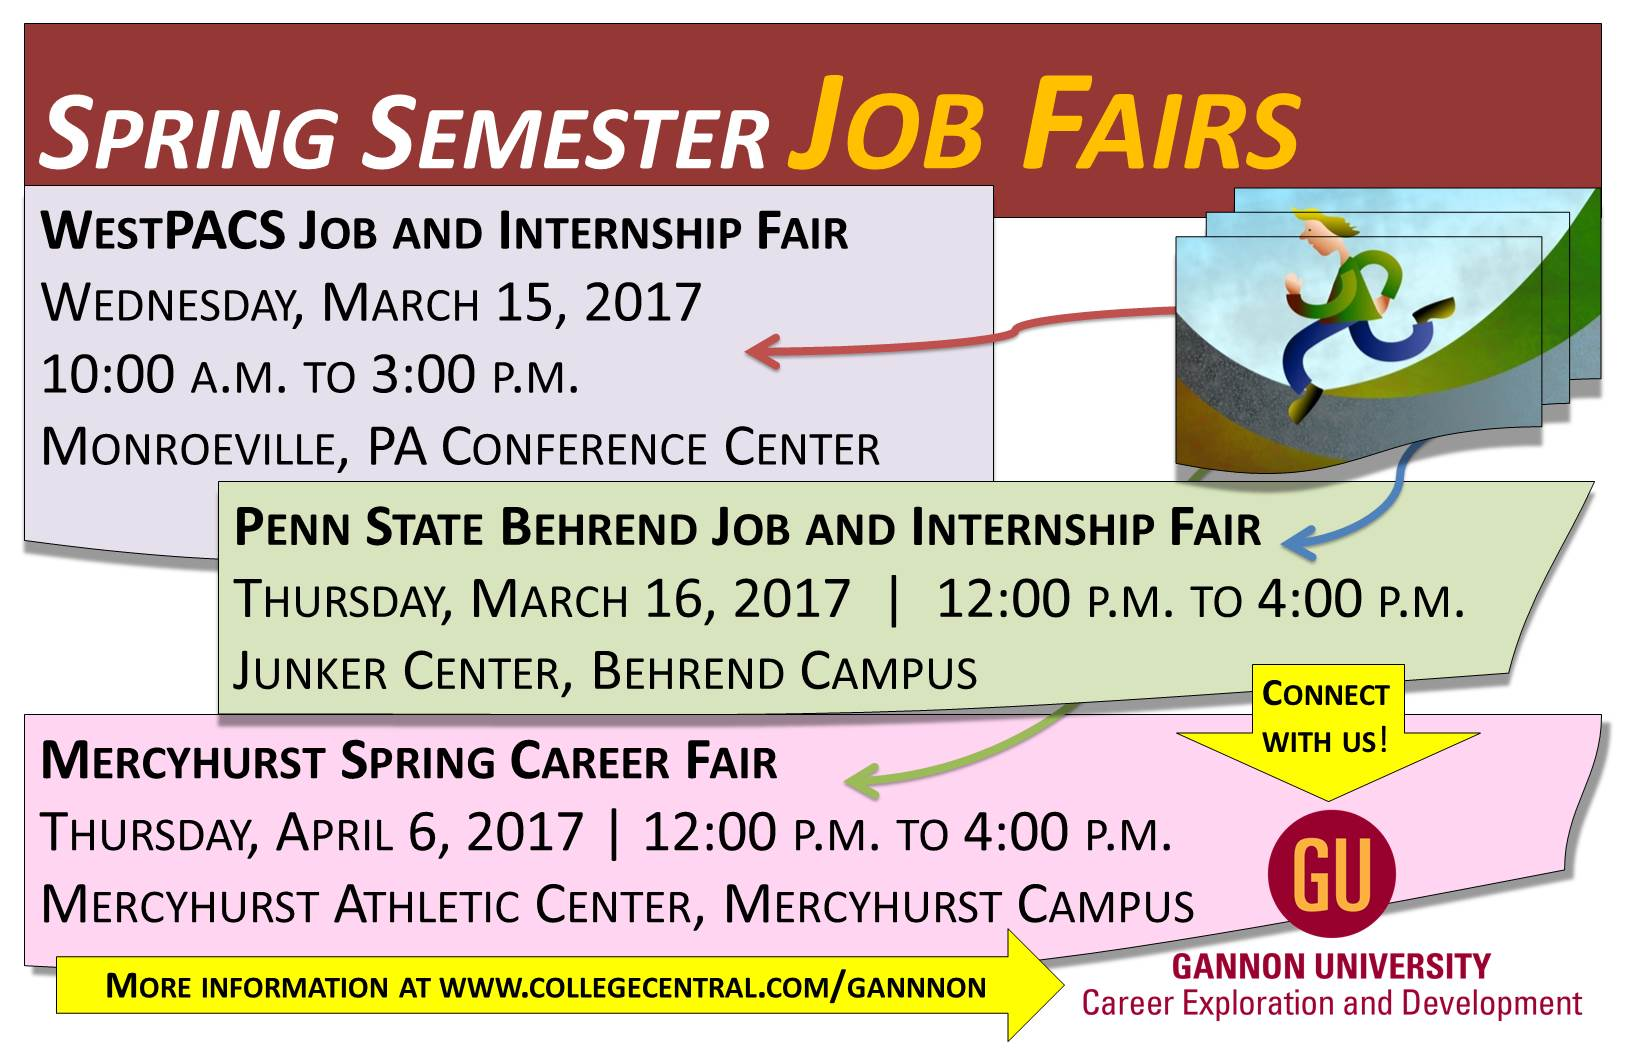 university students spring 2017 job fairs